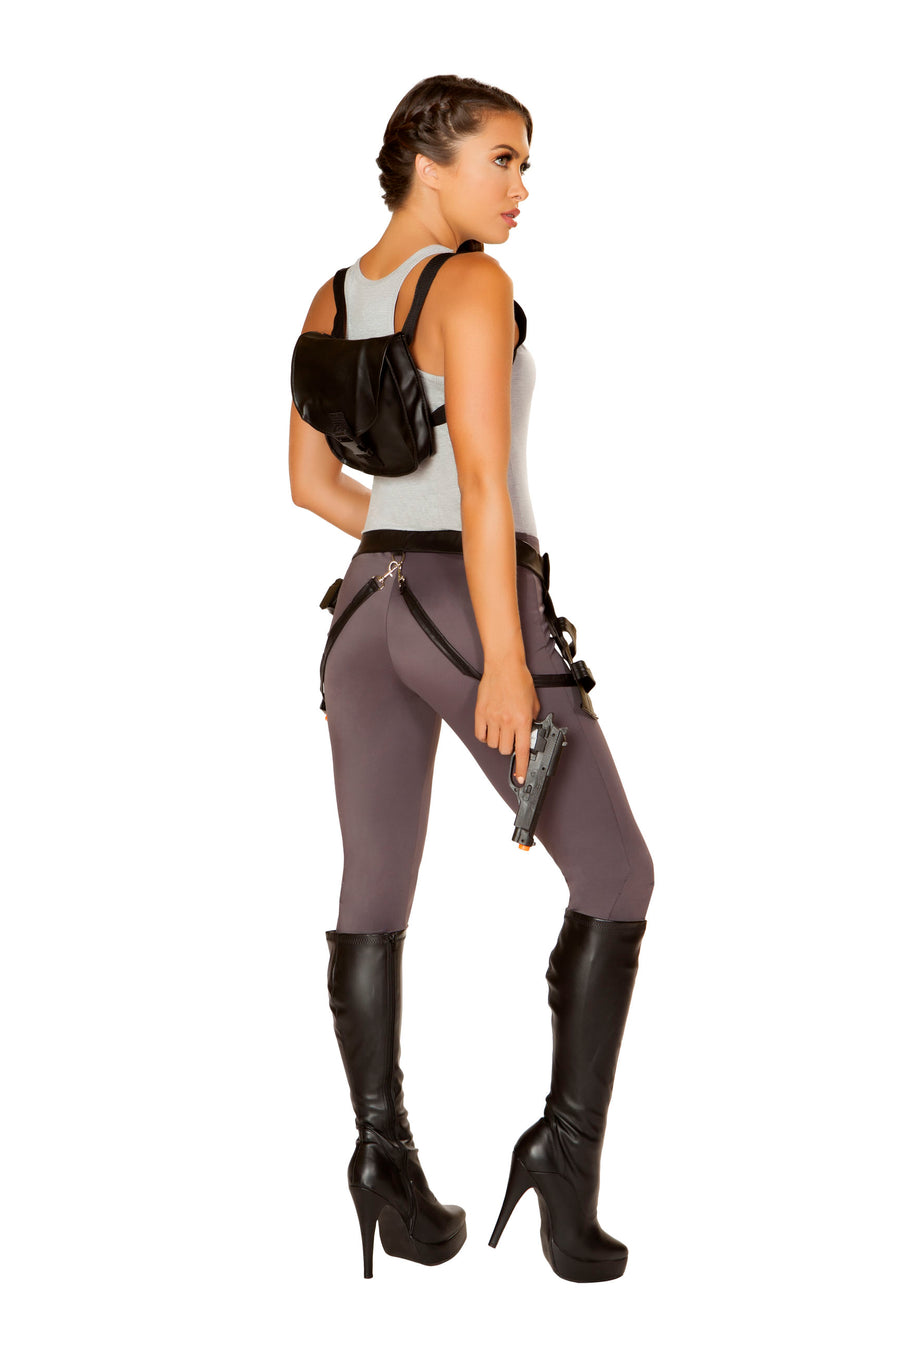 4847 - Roma Costume 5pc Cyber Adventure Tomb Raider Lara Croft